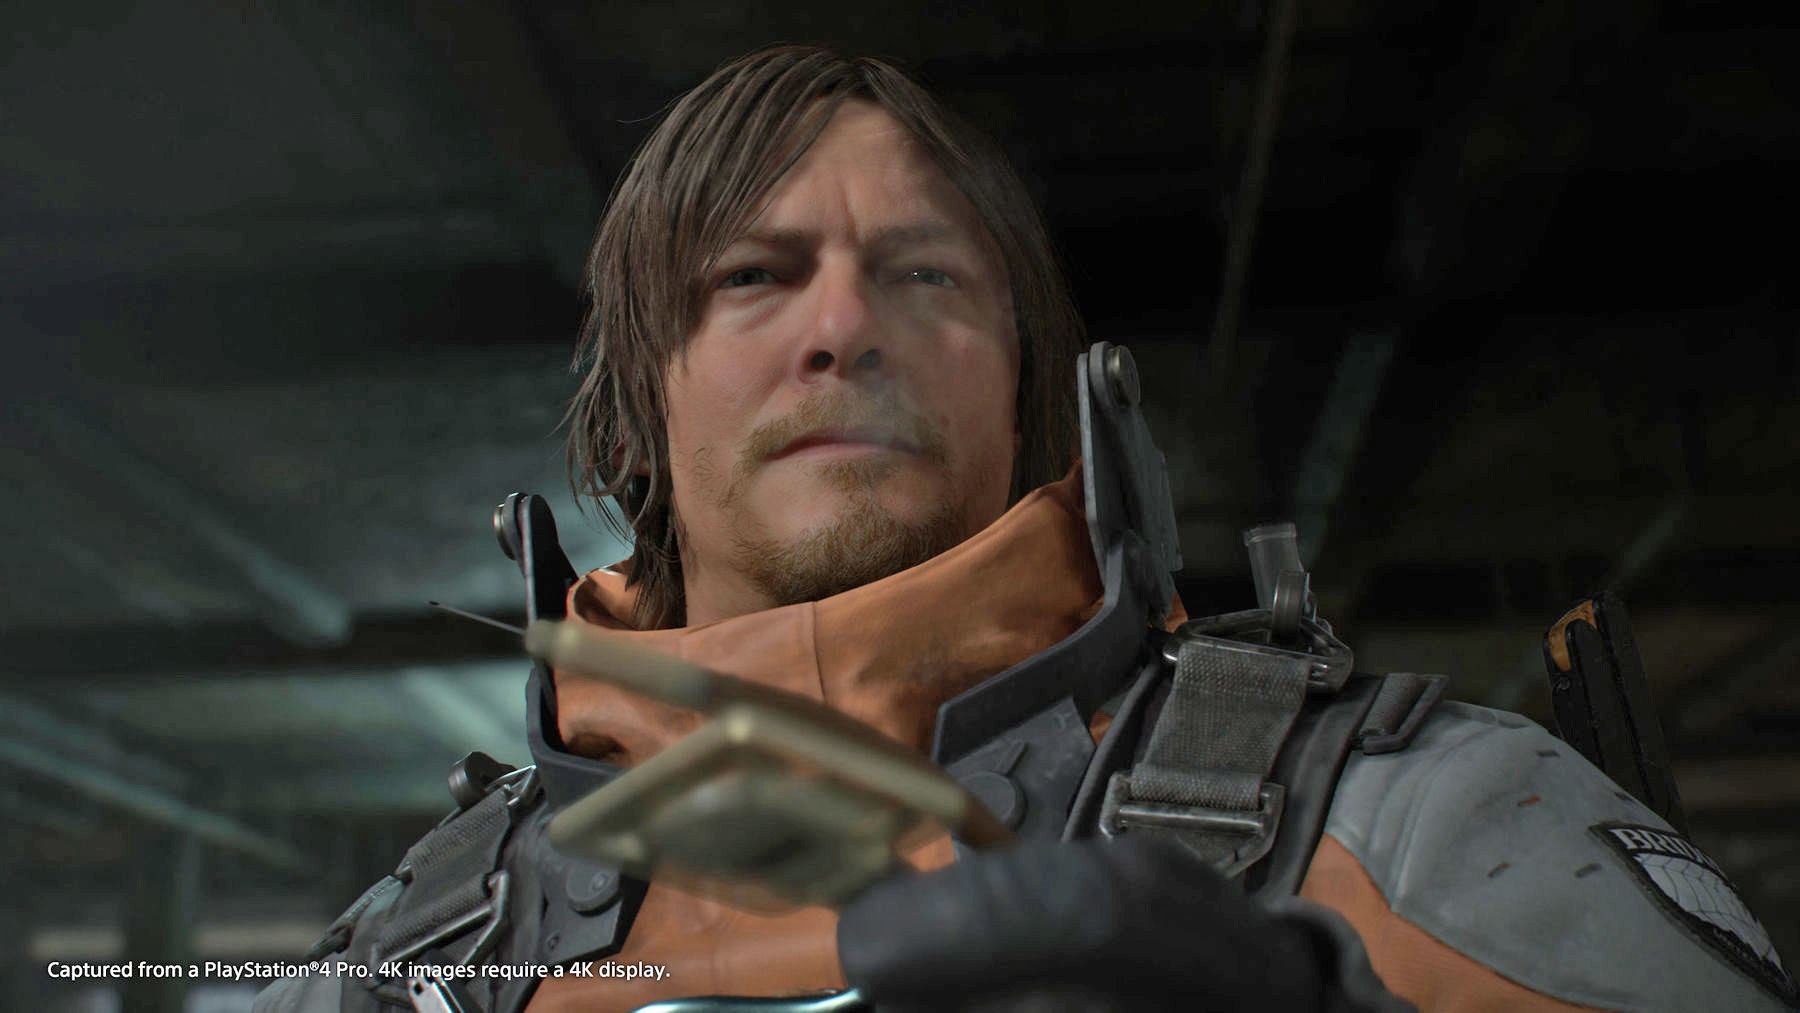 Watch 48 minutes of 'Death Stranding' gameplay | DeviceDaily.com